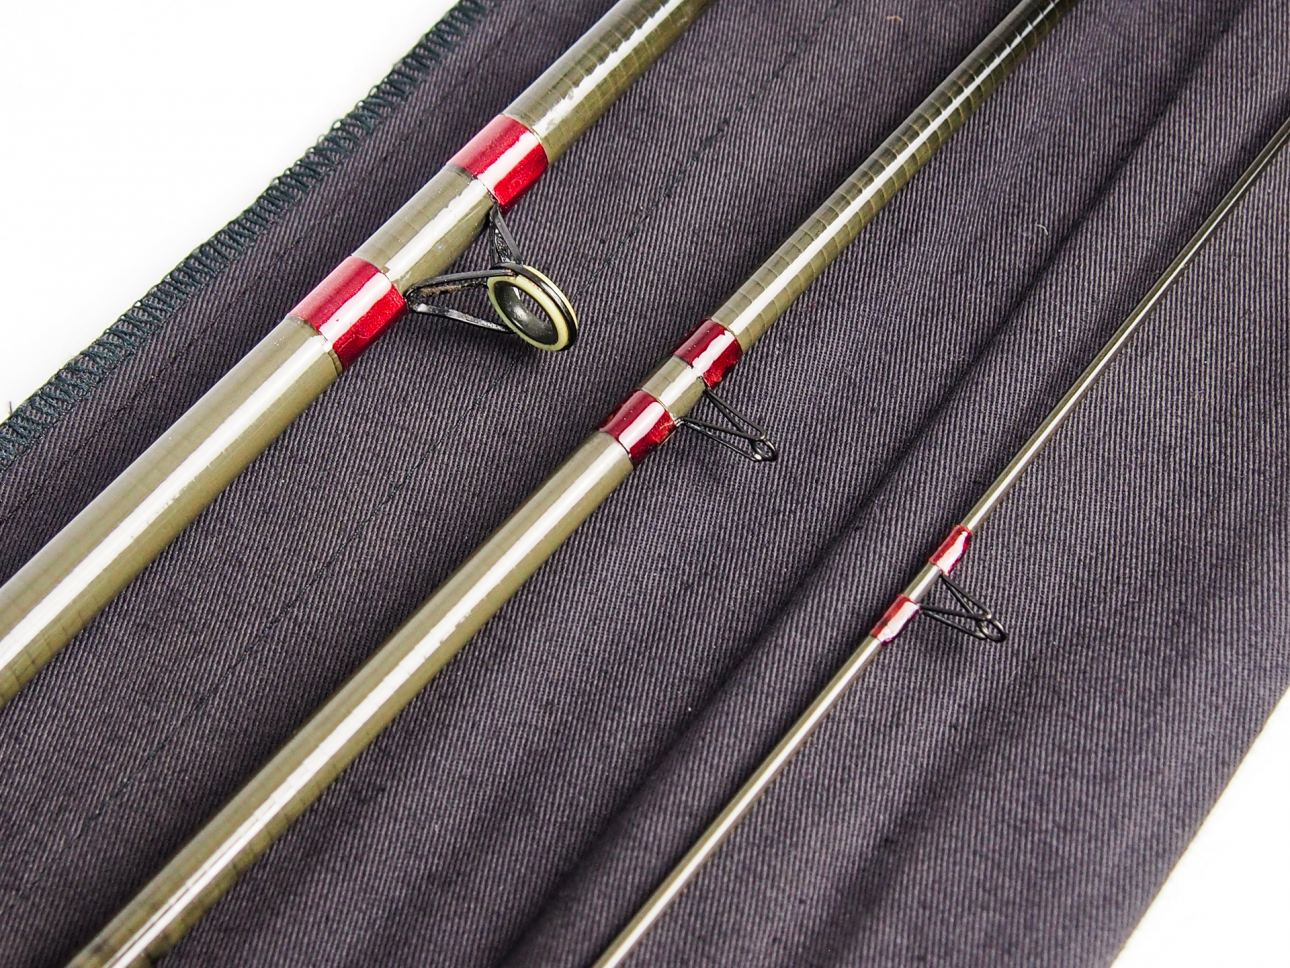 Rare hardy 3 piece 12 carbon match fishing rod for 3 piece fishing rod